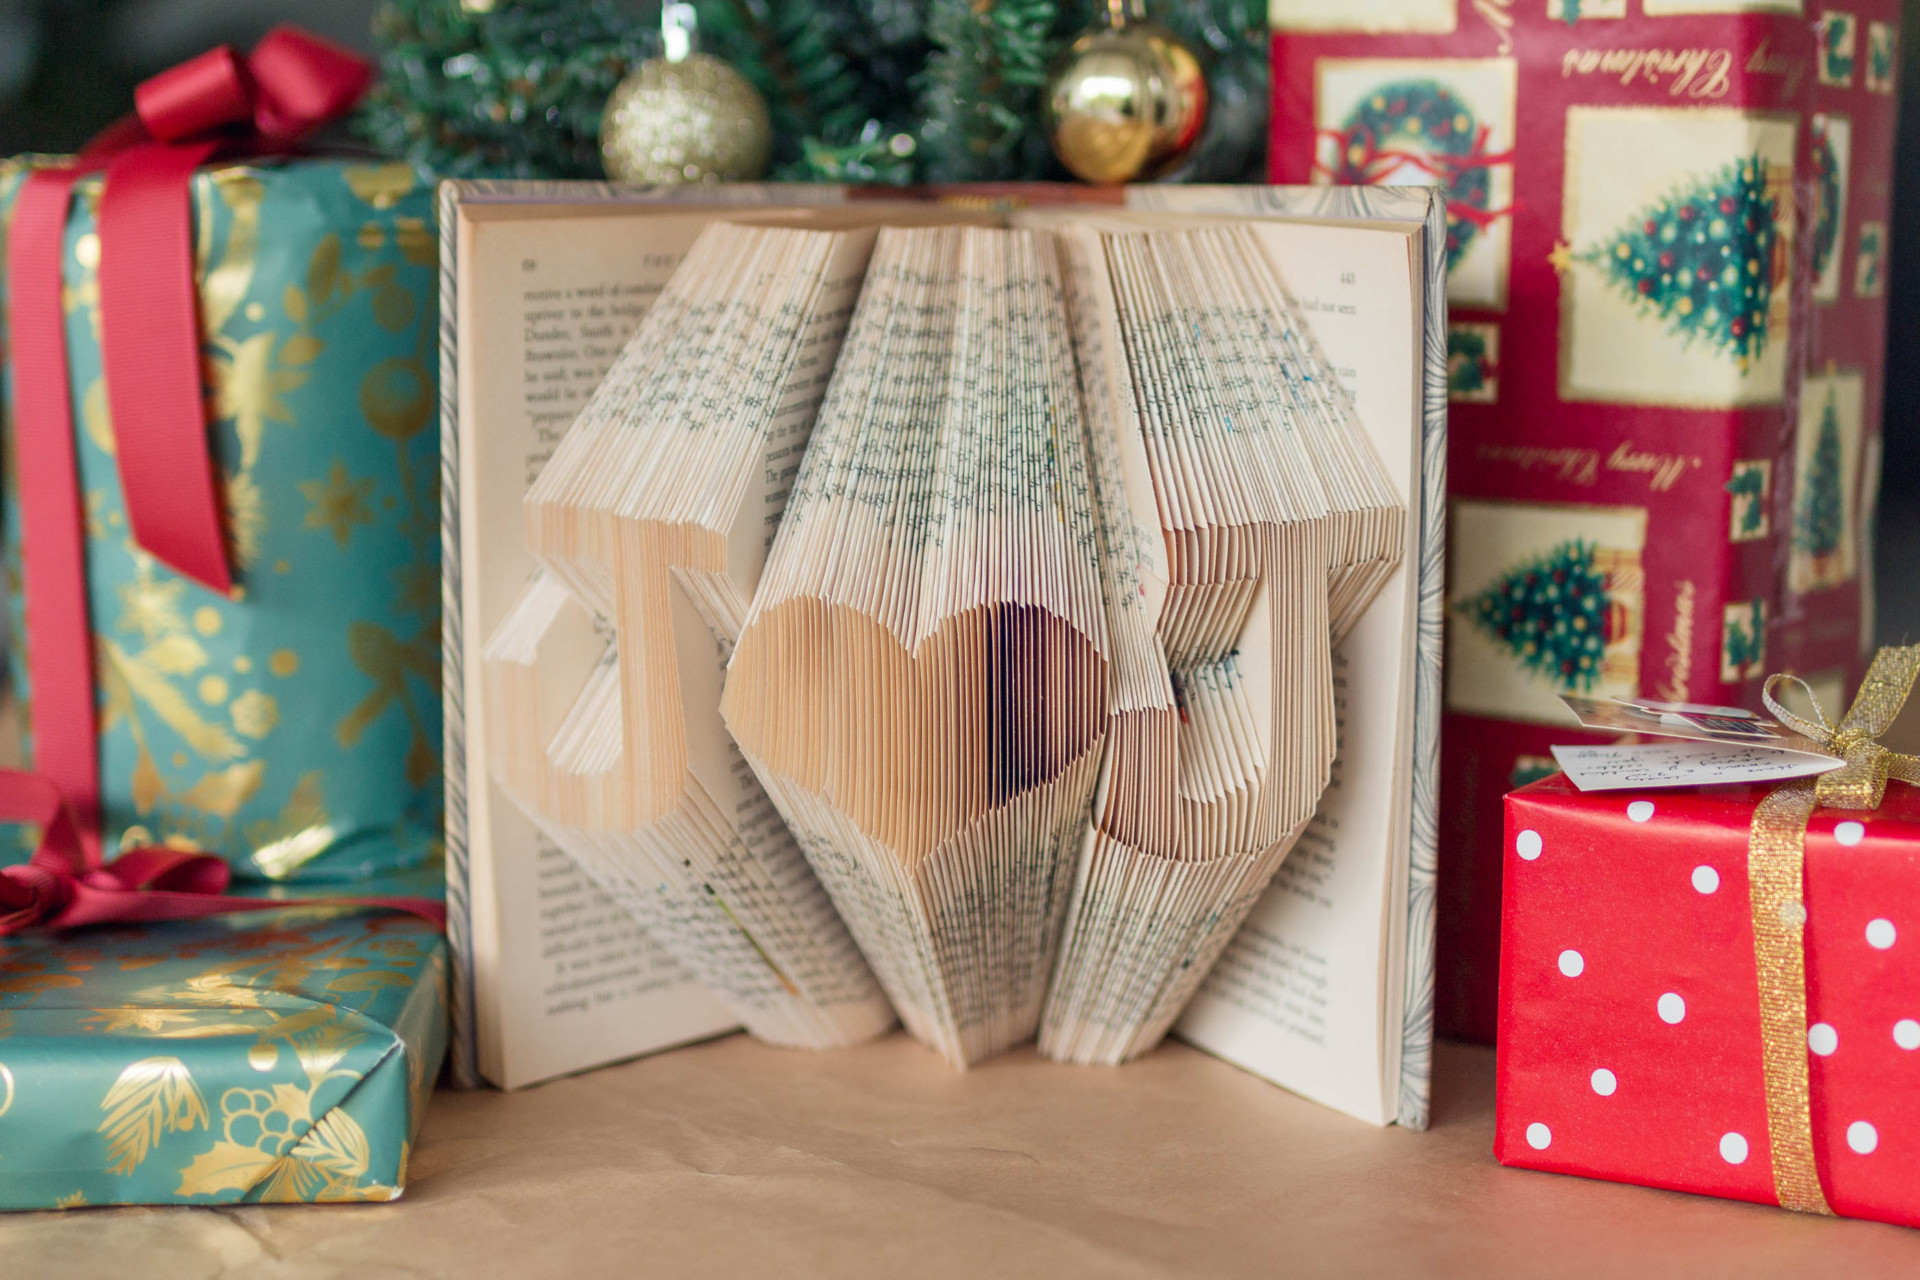 Customise your Christmas with Etsy | A Christmas Gift Guide | heyyyjune.